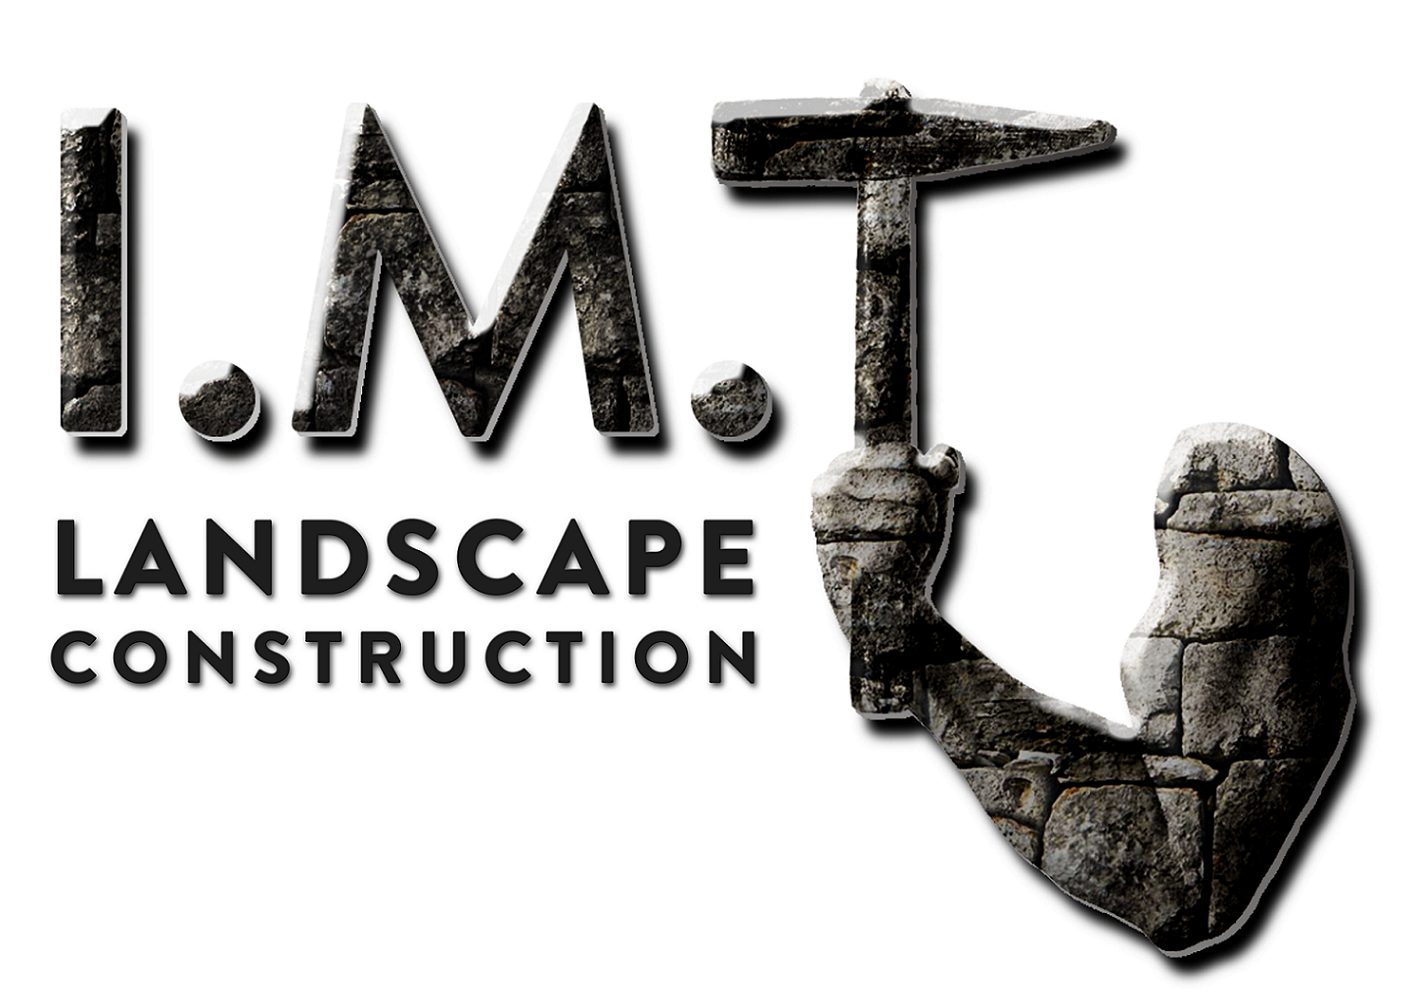 I.M.T Landscape Construction